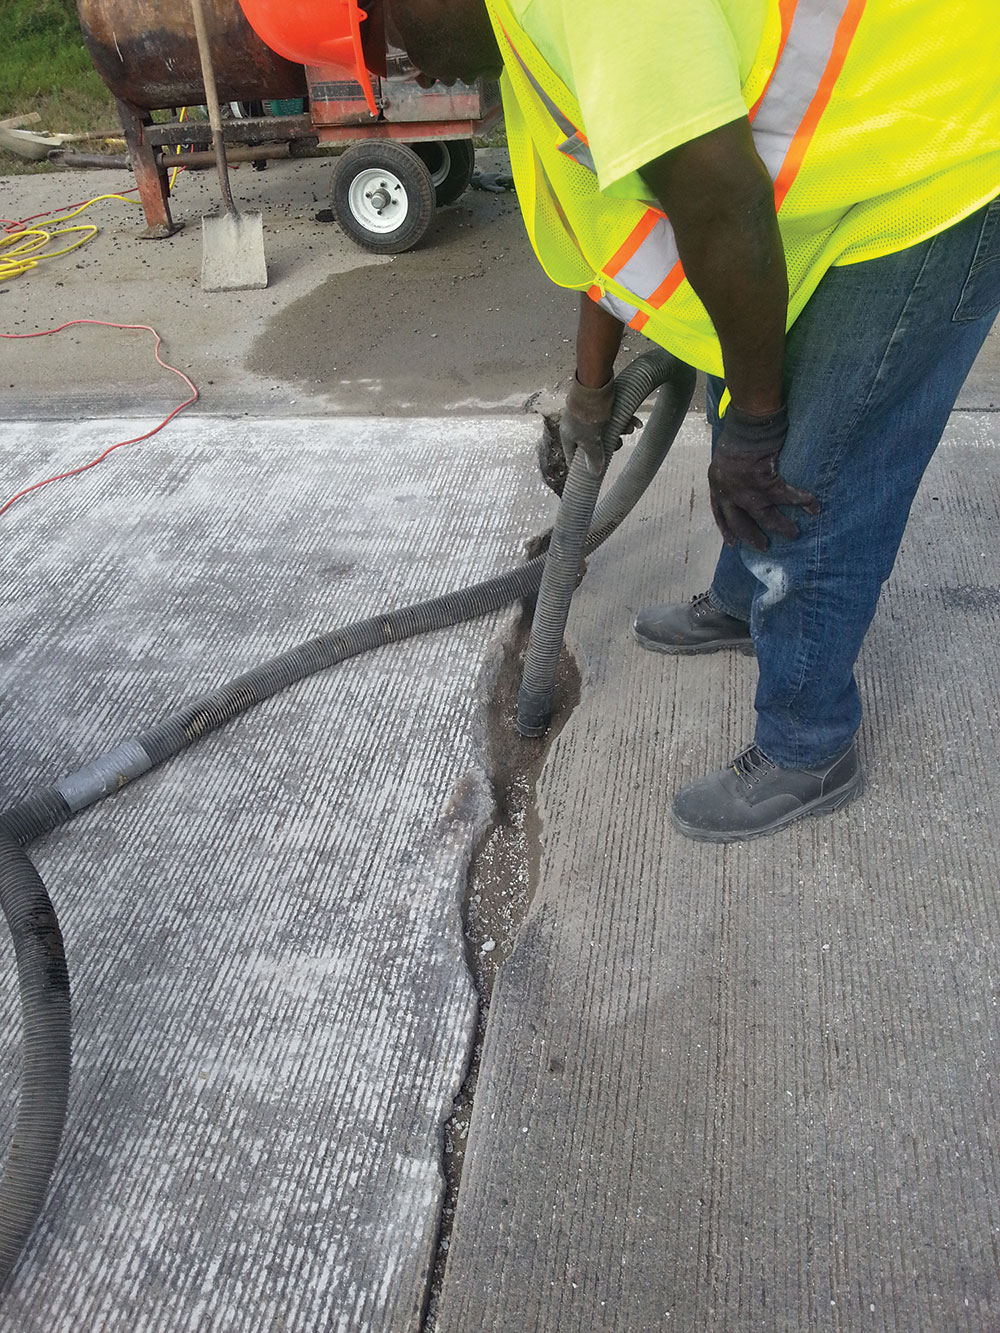 Preparing road damage for repair